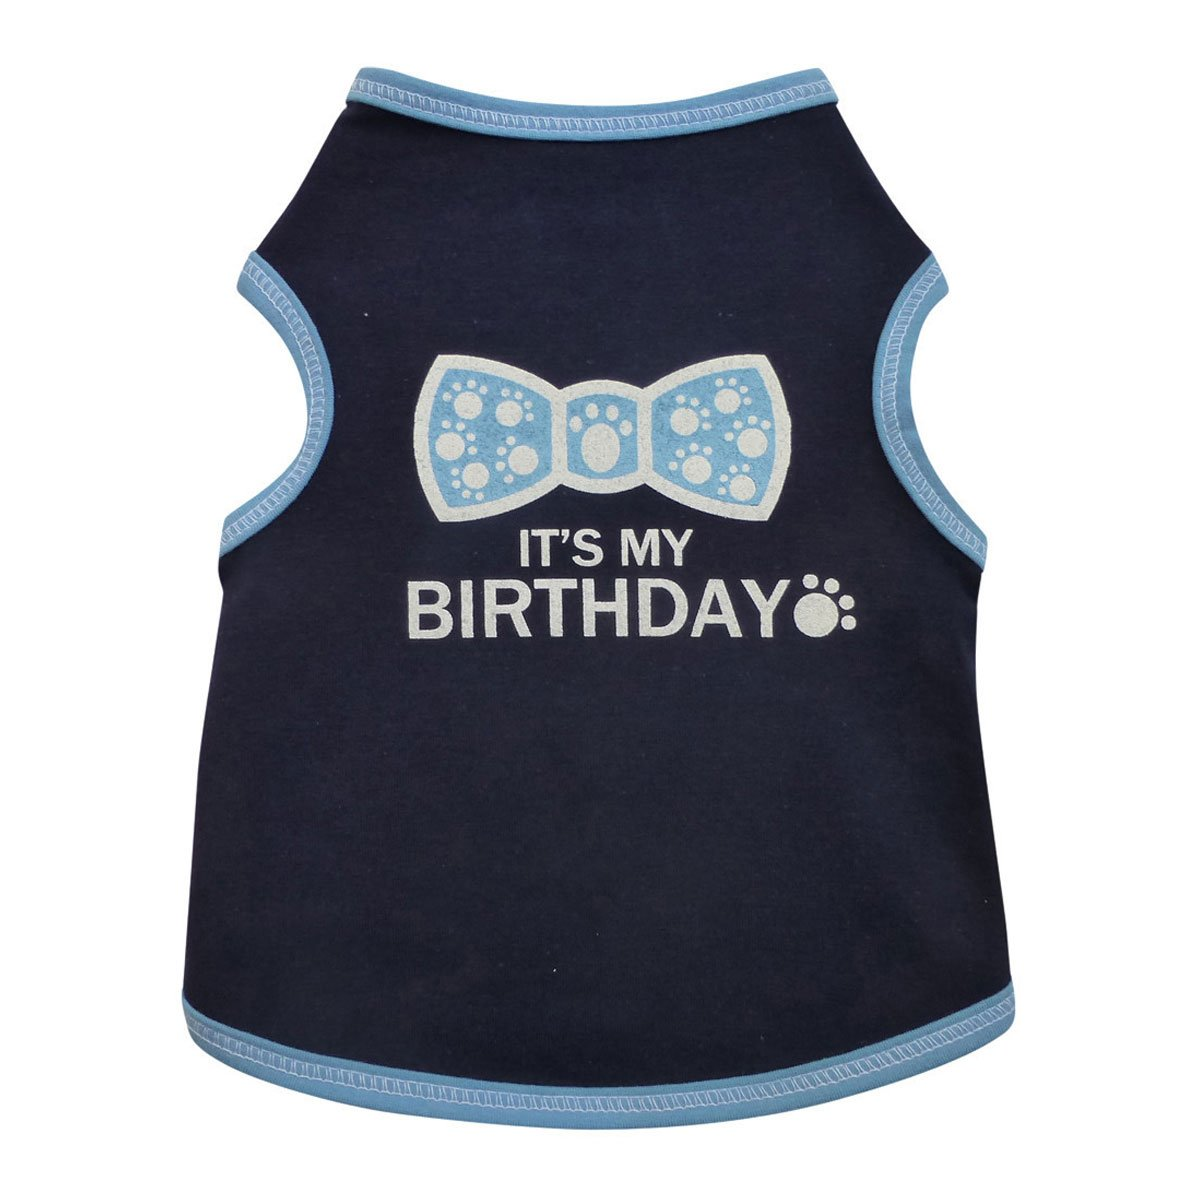 I See Spot ''It's My Birthday'' Tank, X-Large, Navy Blue